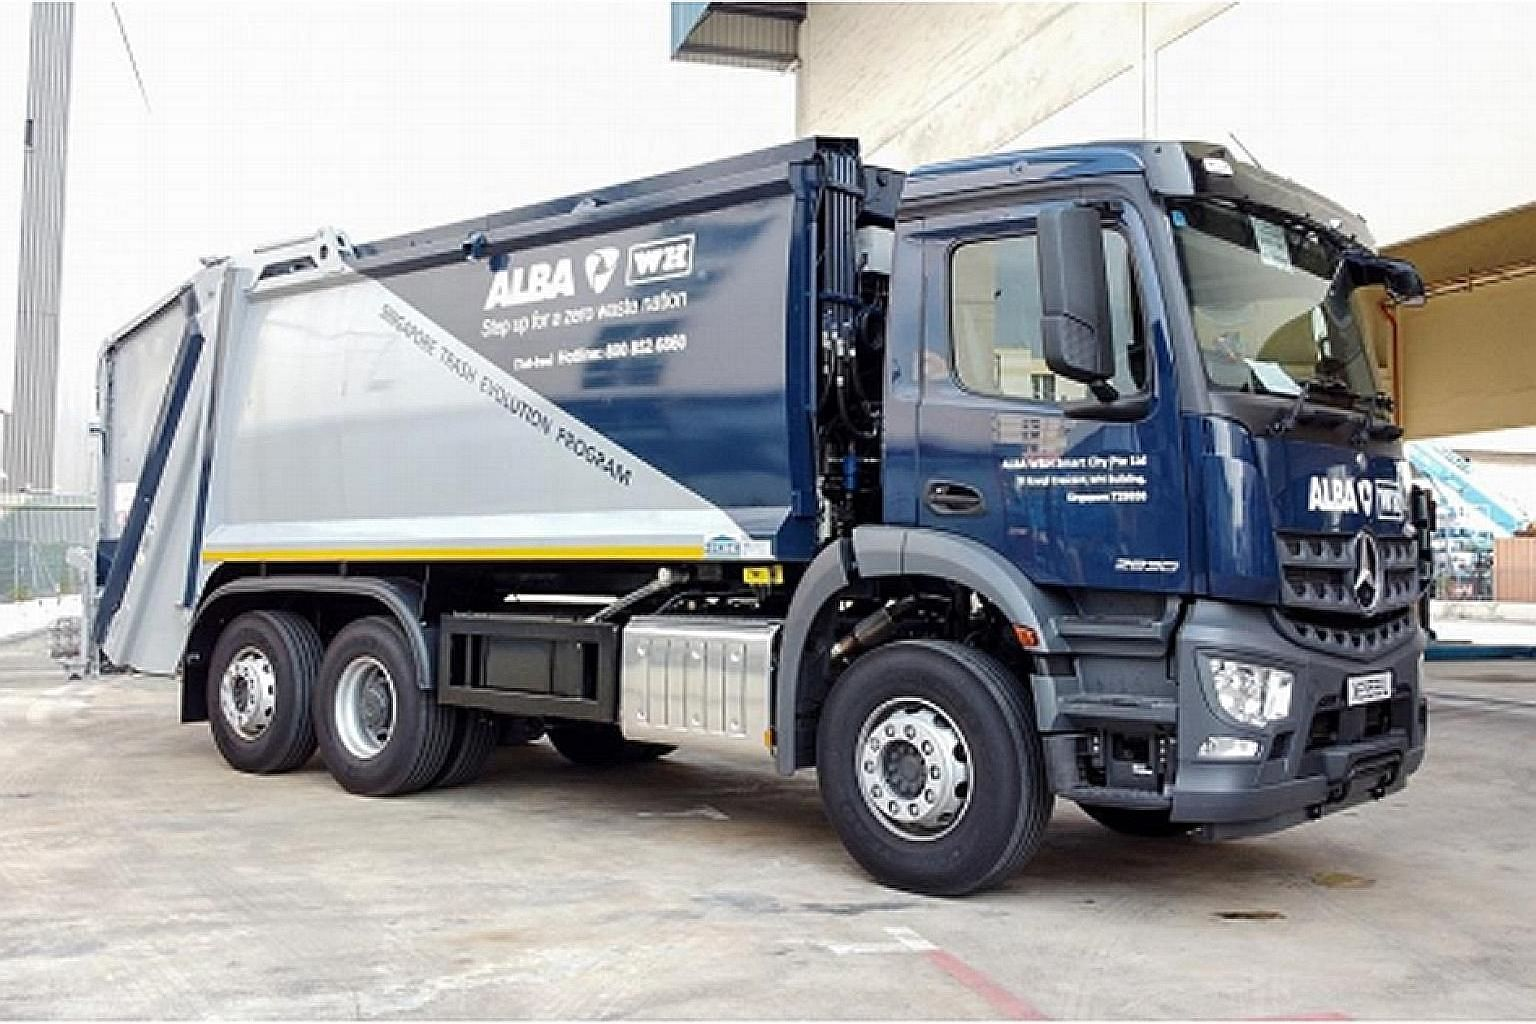 The new environmentally friendly waste collection trucks from Alba W&H have solar mats installed on their roofs (far right) to reduce fuel consumption and carbon emissions. PHOTOS: ALBA W&H